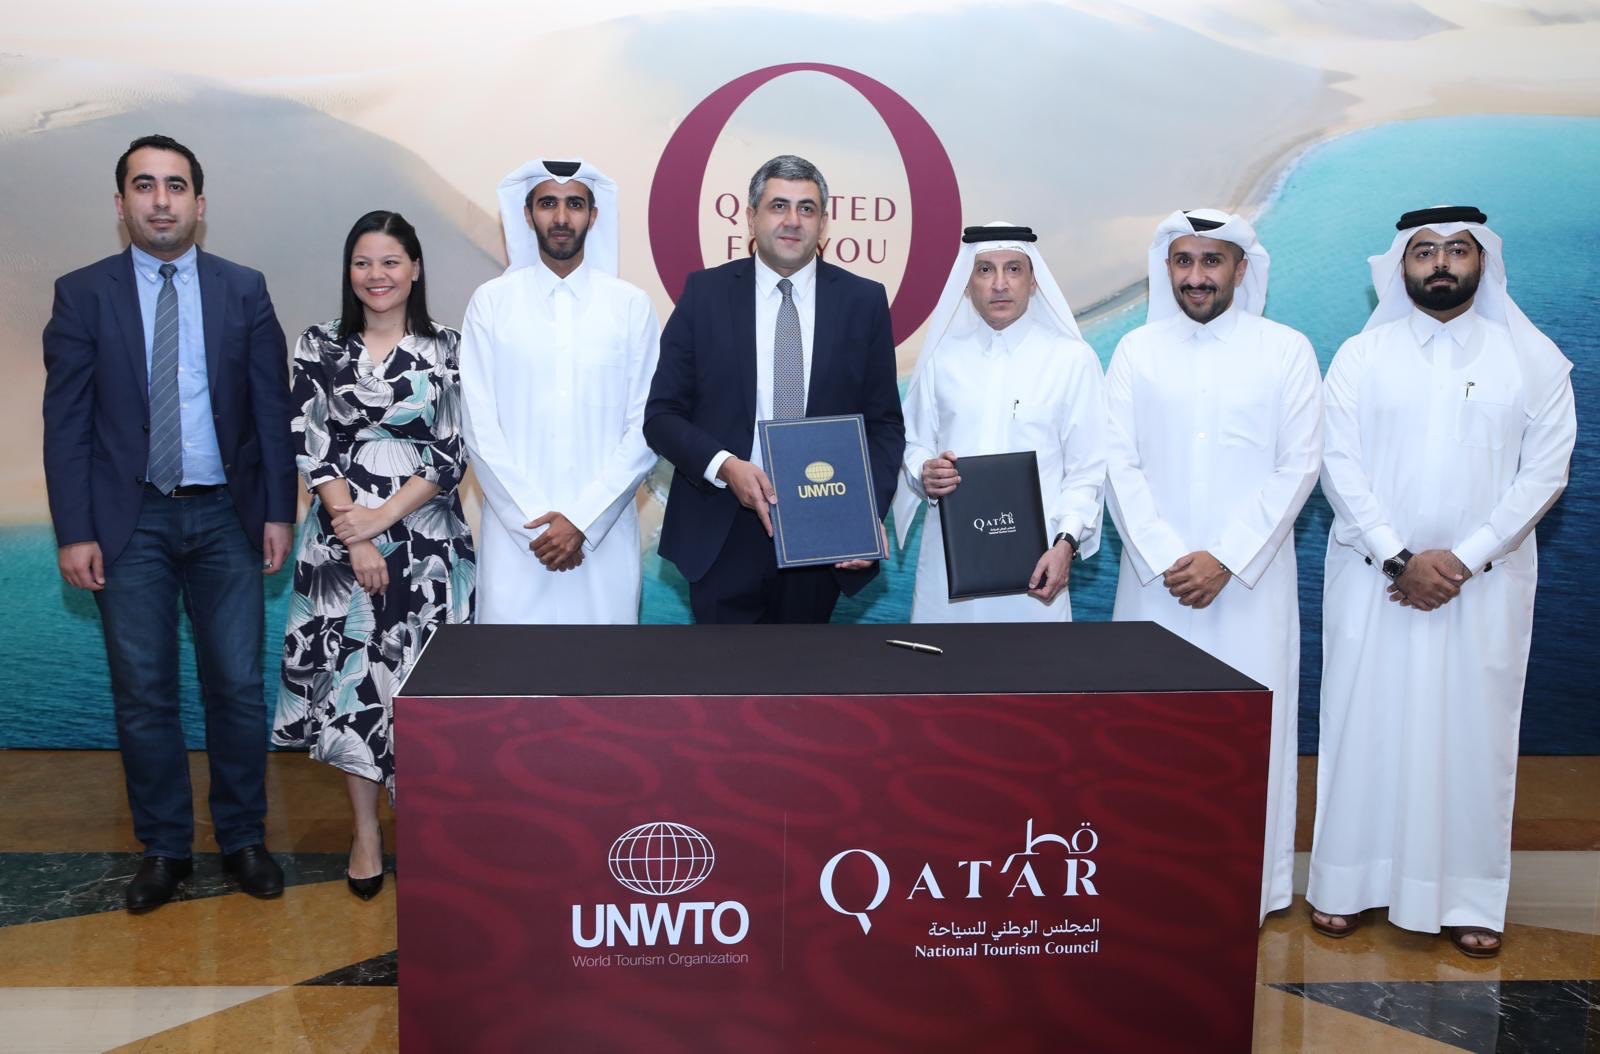 Qatar inks deal with UNWTO to sponsor Maiden Global Tourism Sports competition